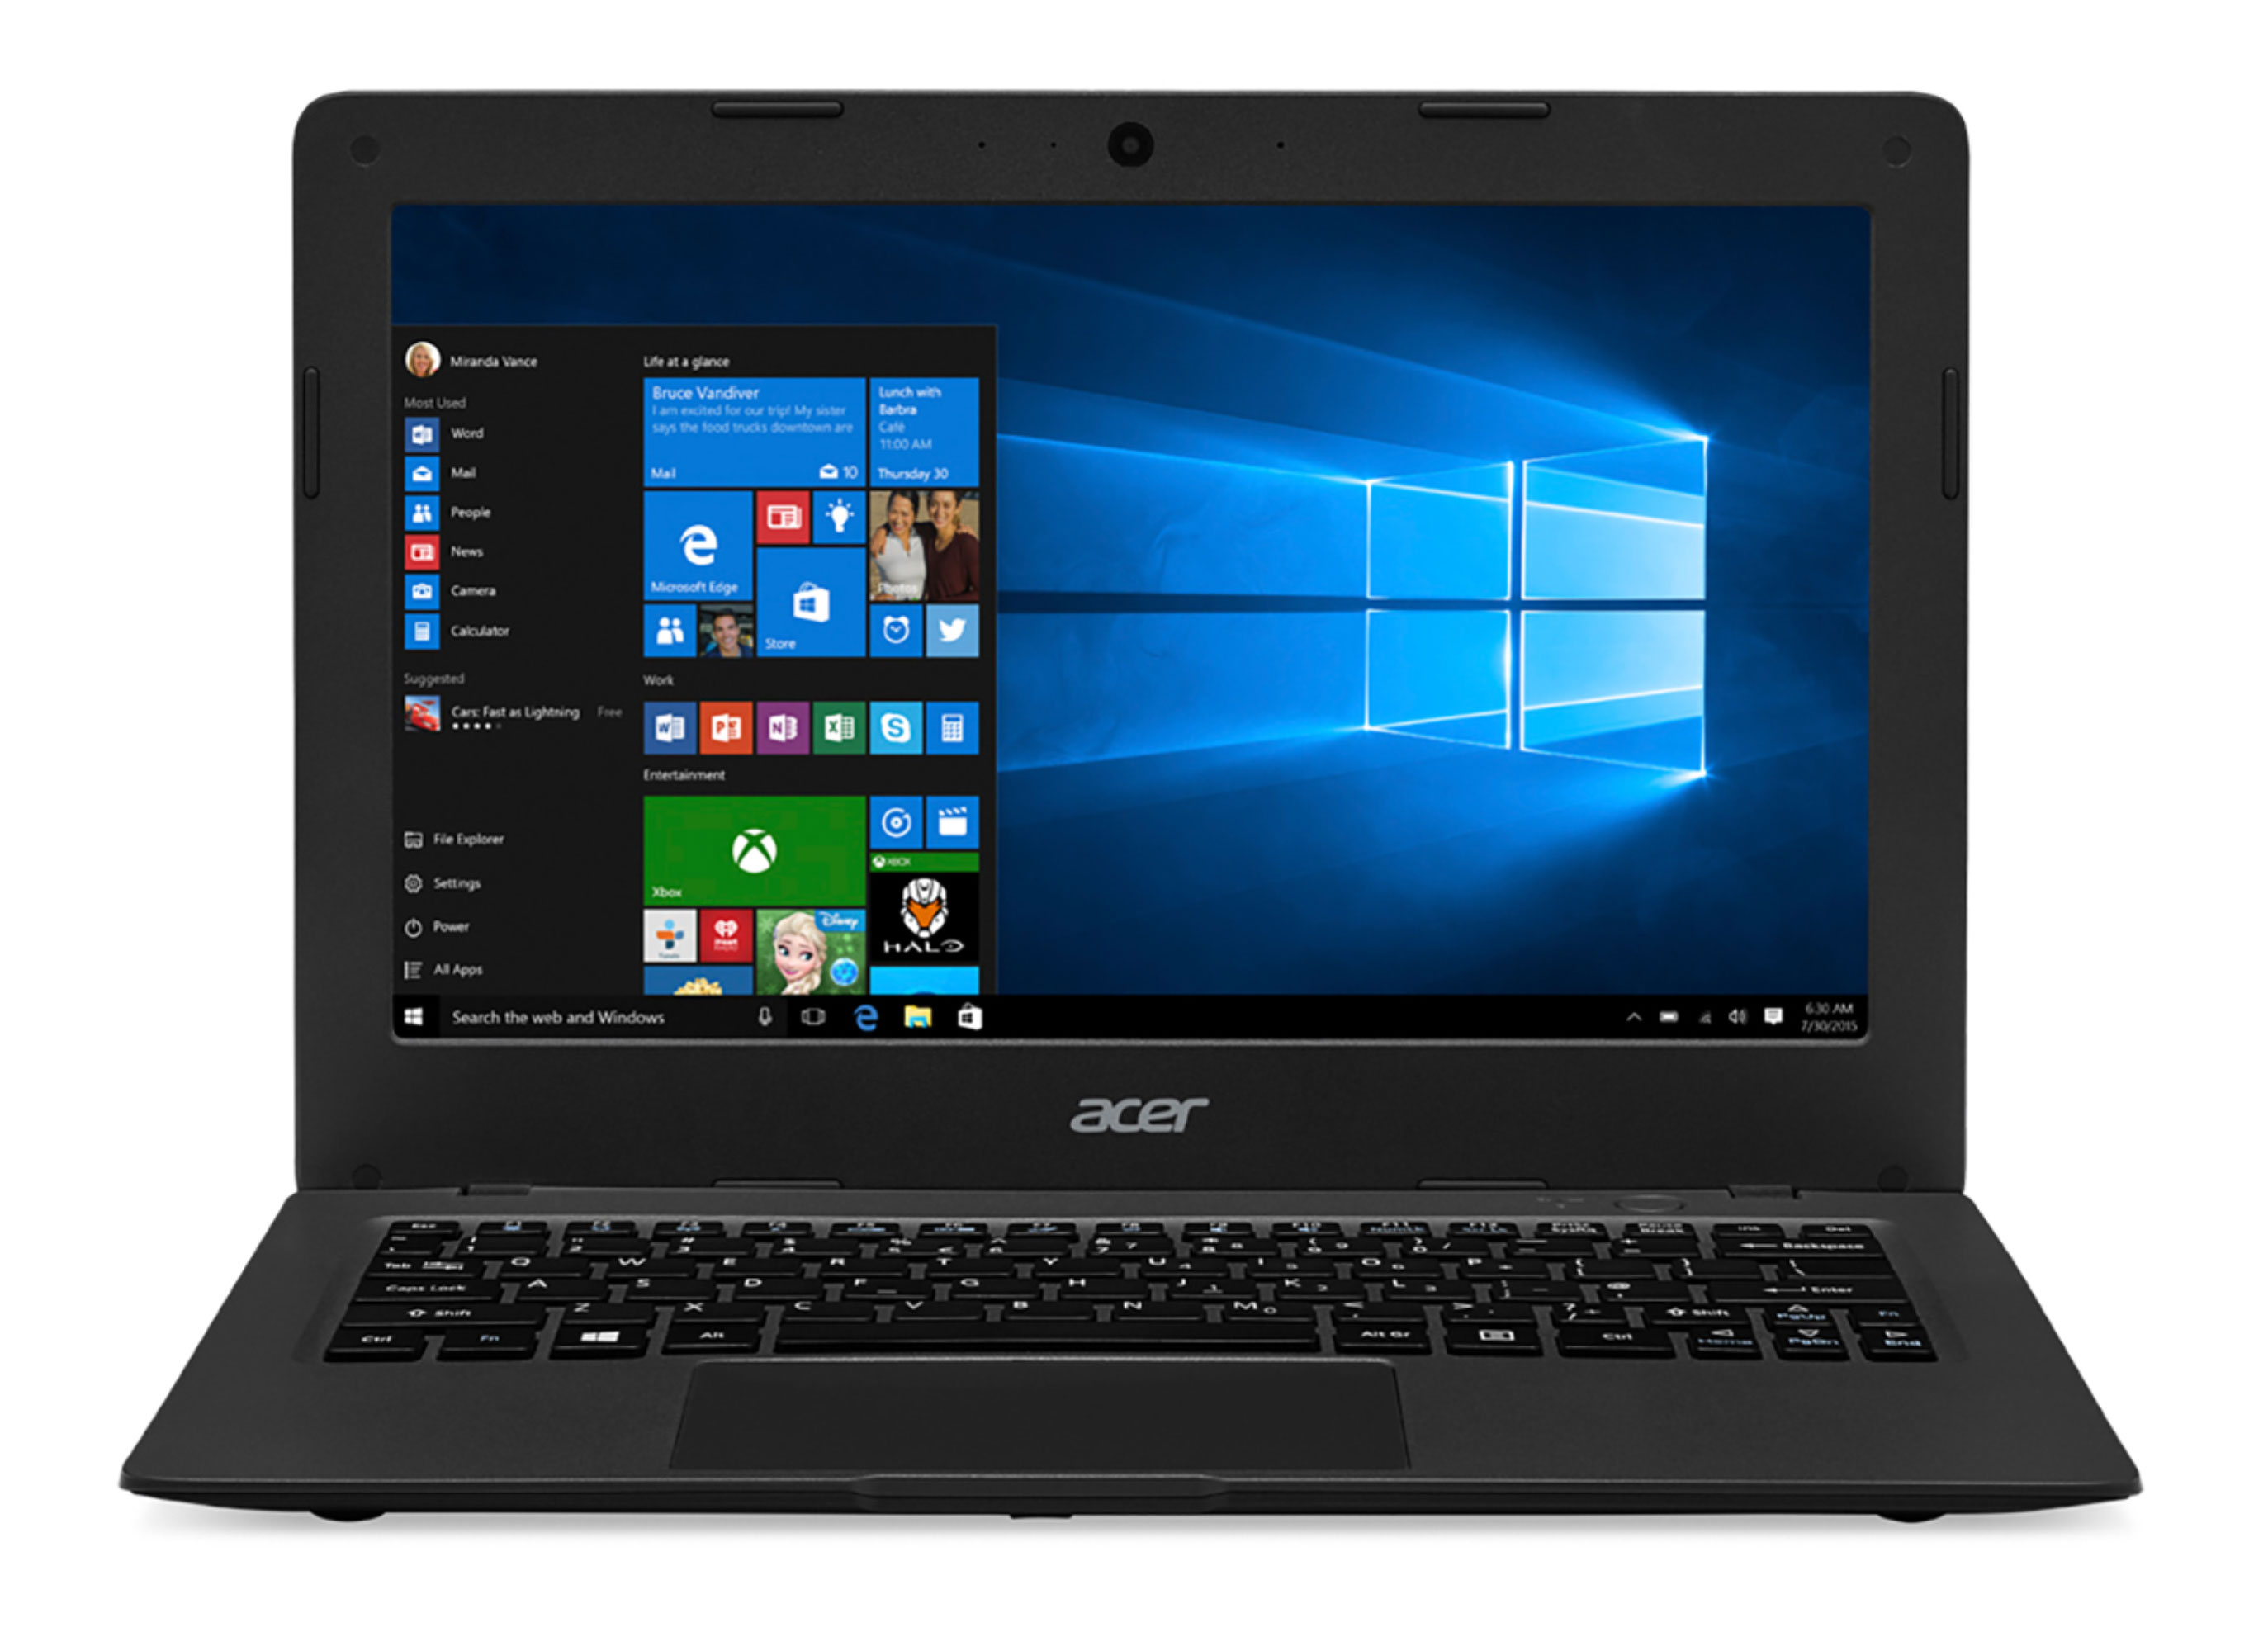 Acer Aspire AO1131 116 Cloudbook 2GB RAM 32GB Storage